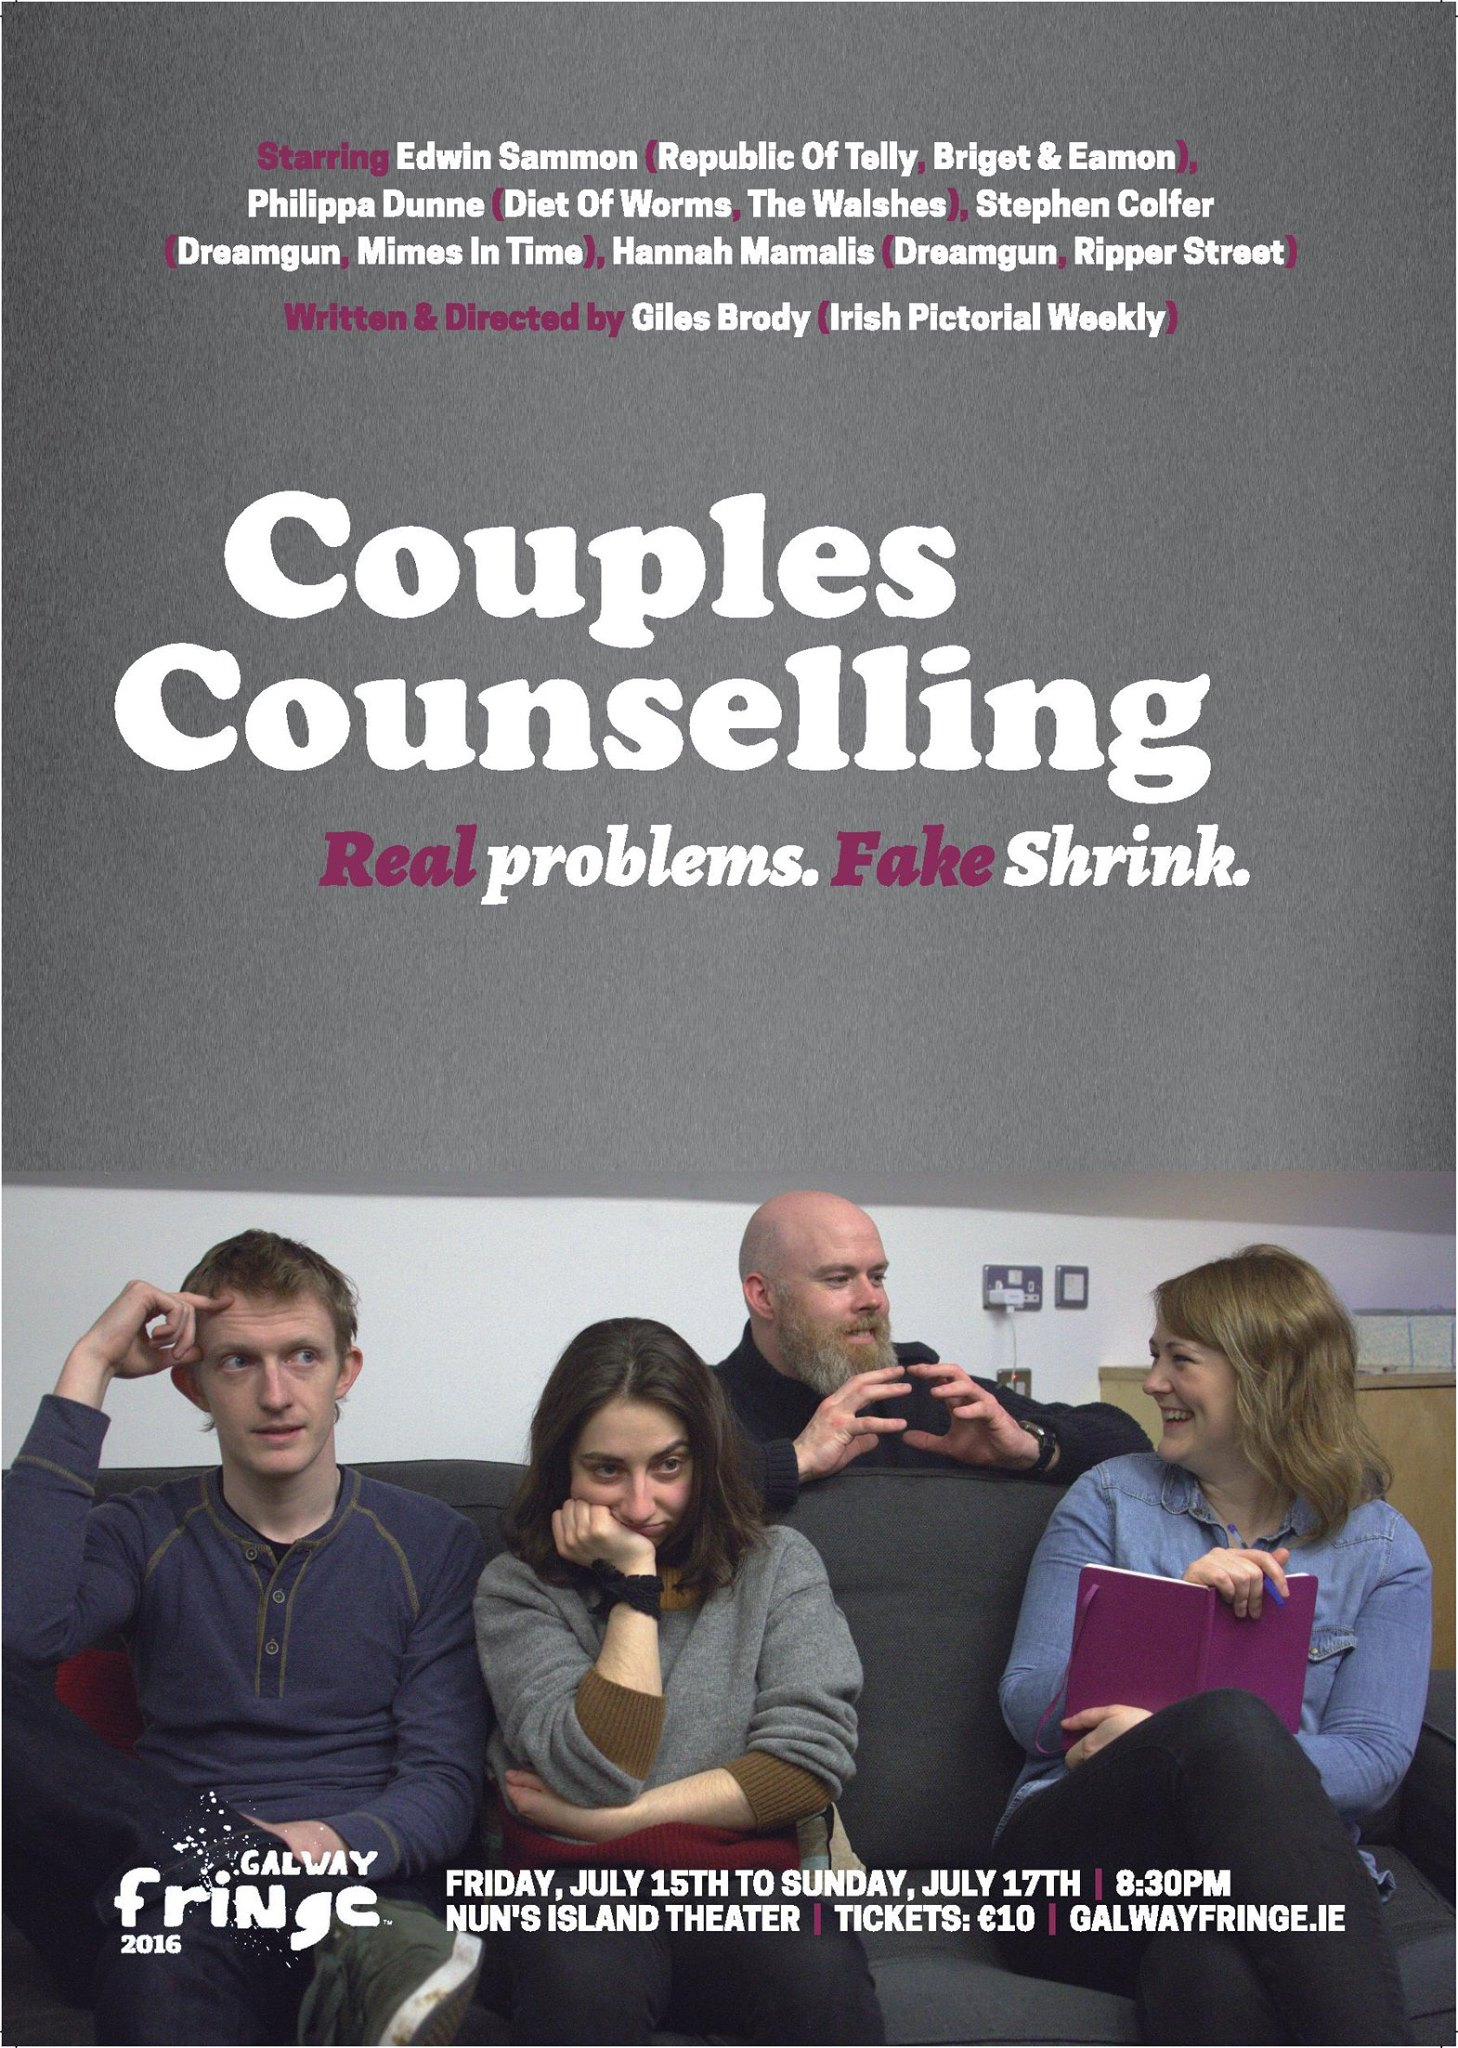 Couples Counselling Poster.jpg